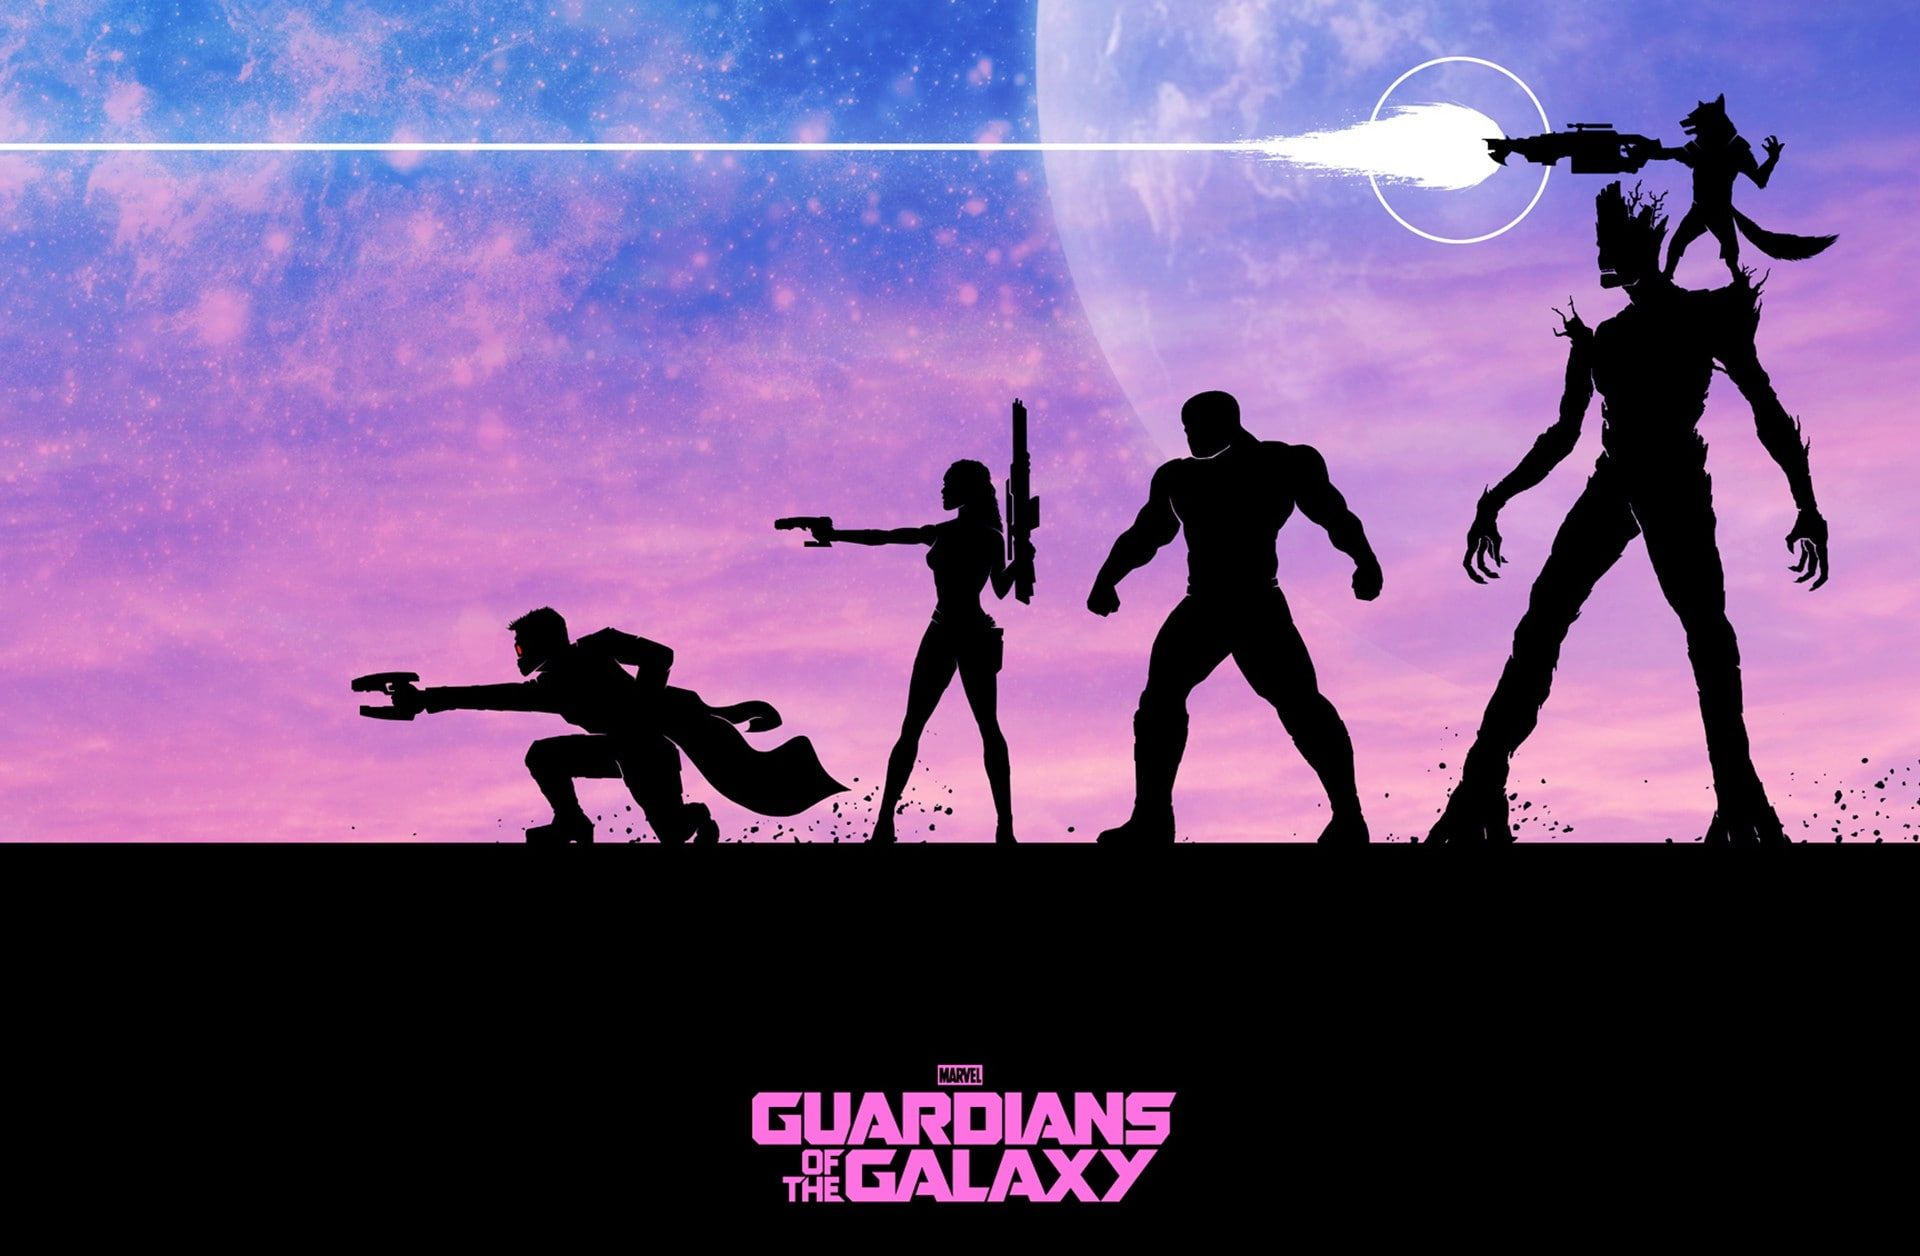 Guardians Of The Galaxy Guardians Of The Galaxy Peter Quill Star Lord Gamora Movie Drax The Destroyer Gr Guardians Of The Galaxy Galaxy Wallpaper Star Lord